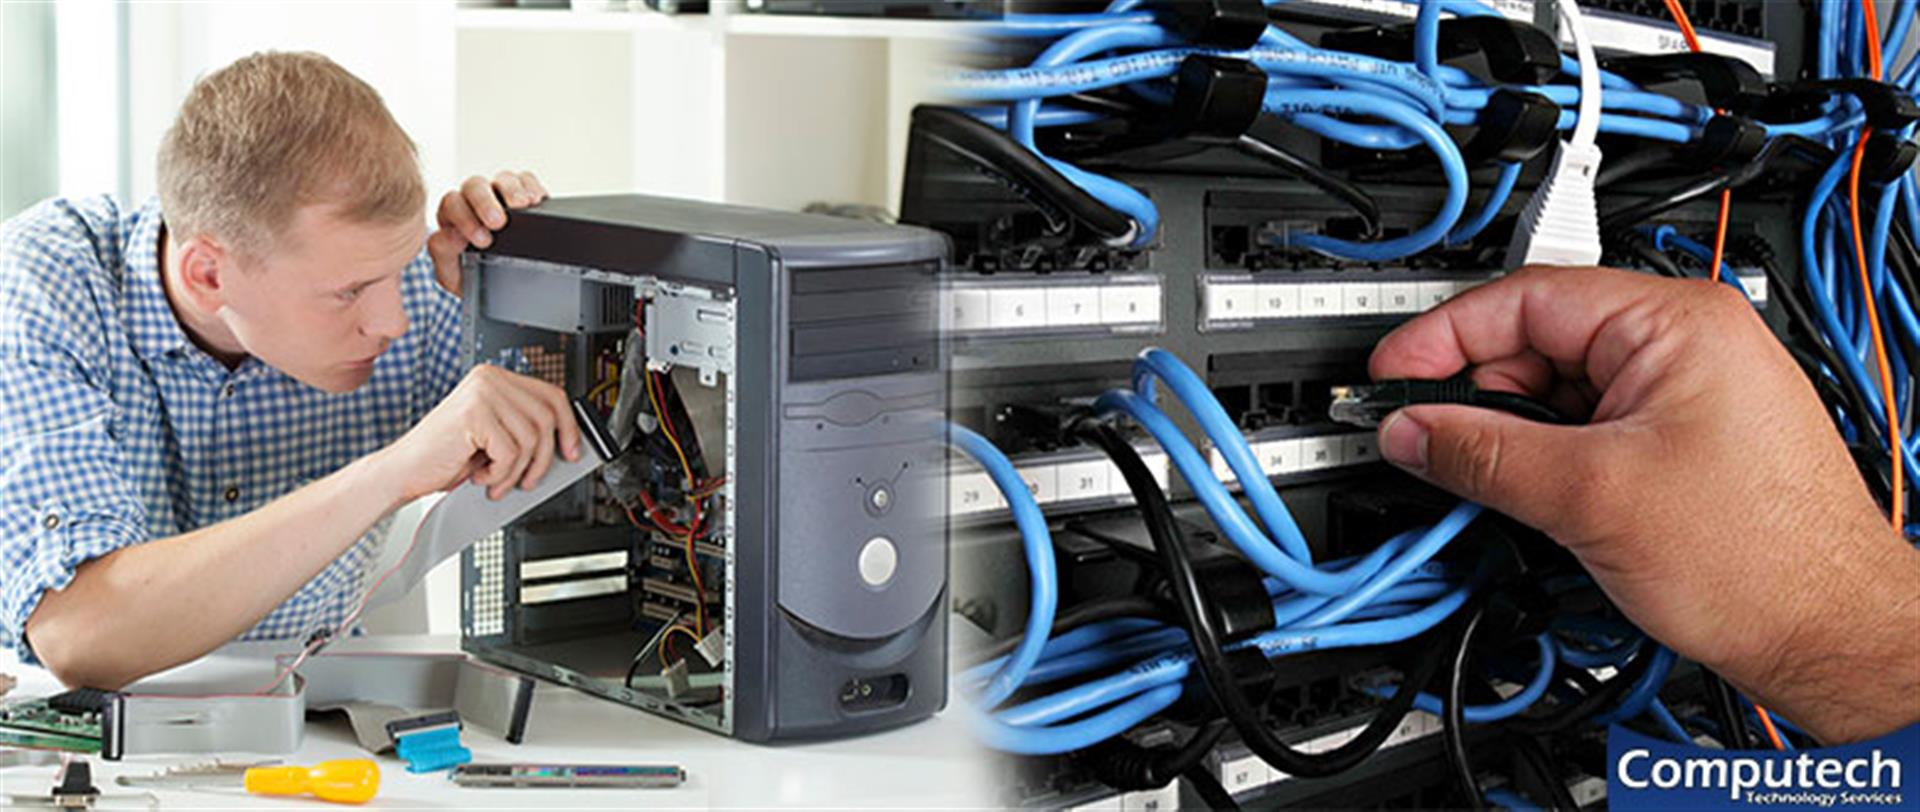 Clarkston Georgia On Site Computer & Printer Repairs, Networks, Voice & Data Cabling Contractors